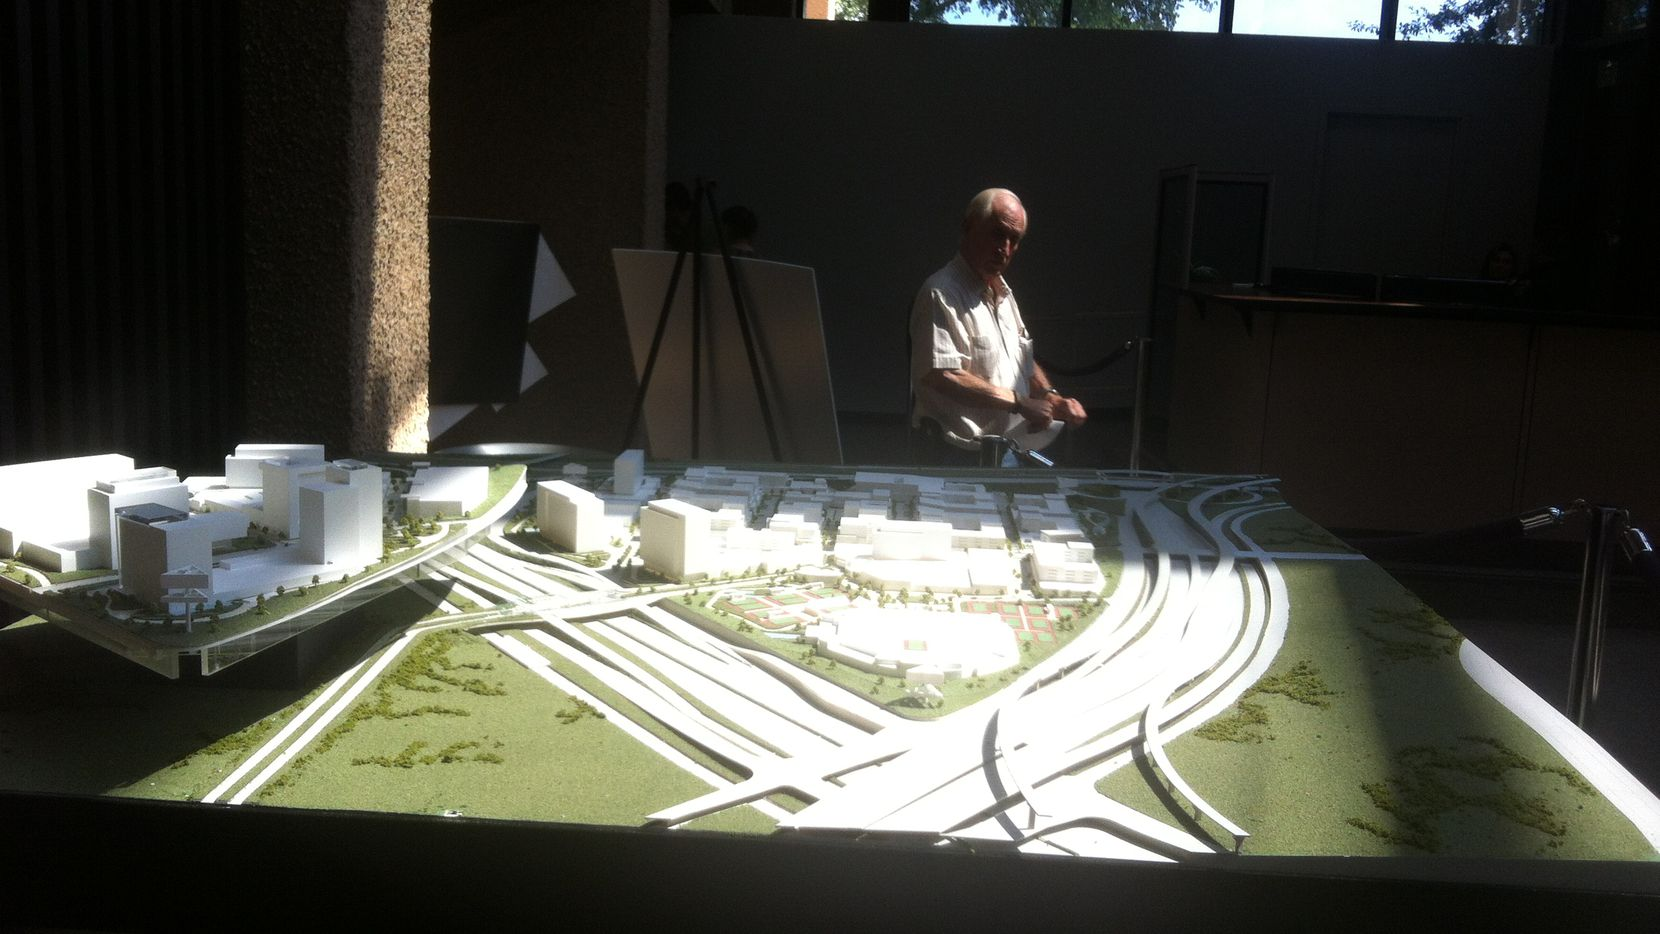 A man slows to look at miniature model of a mini city on the abandoned Texas Stadium site in the Irving City Hall lobby in June 2014. Exclusive negotiations between the city and the development firm that built the model expired last month, the model has been moved from City Hall, and the most ambitious project in Irving sits in limbo.    Photo taken June 2014.